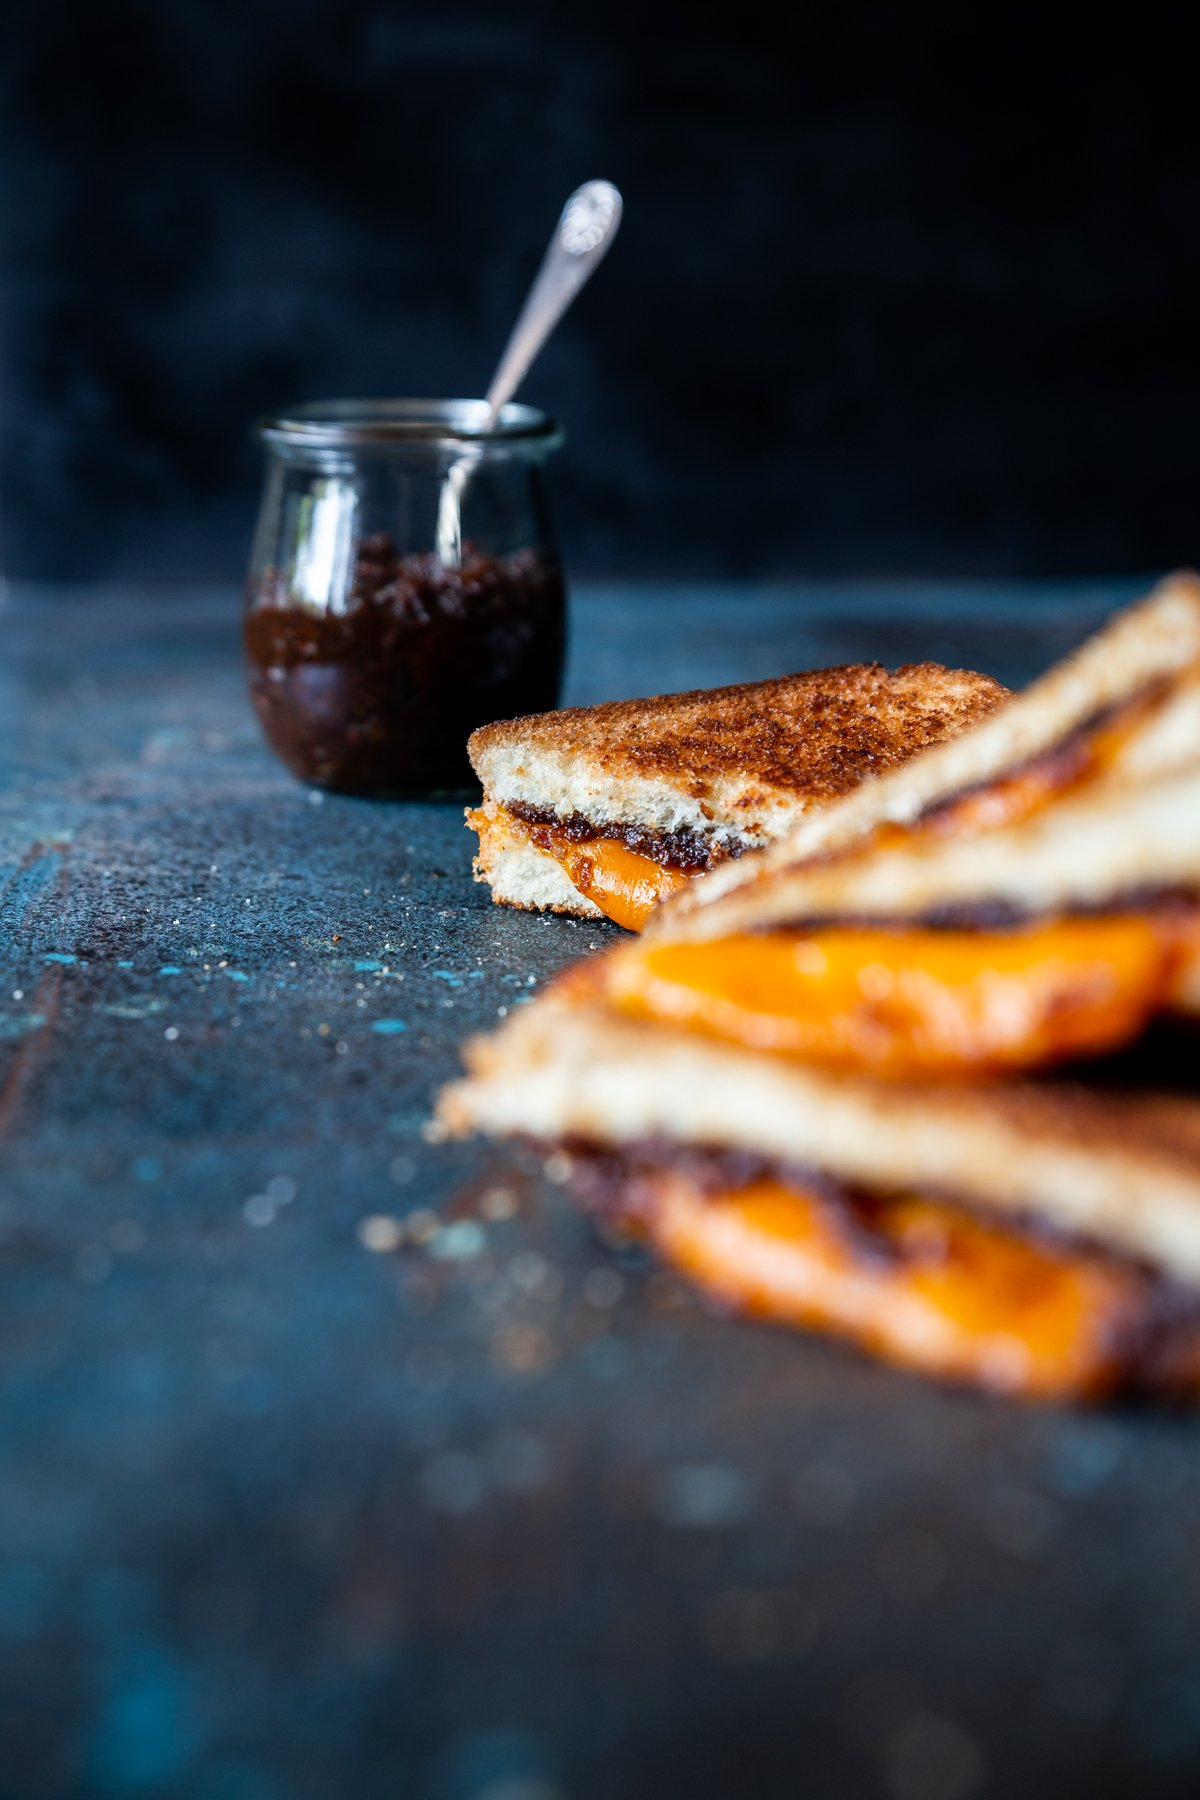 Bacon jam in small tulip jars, spoon with bacon jam on it, bacon jam grilled cheese triangles stacked on each other